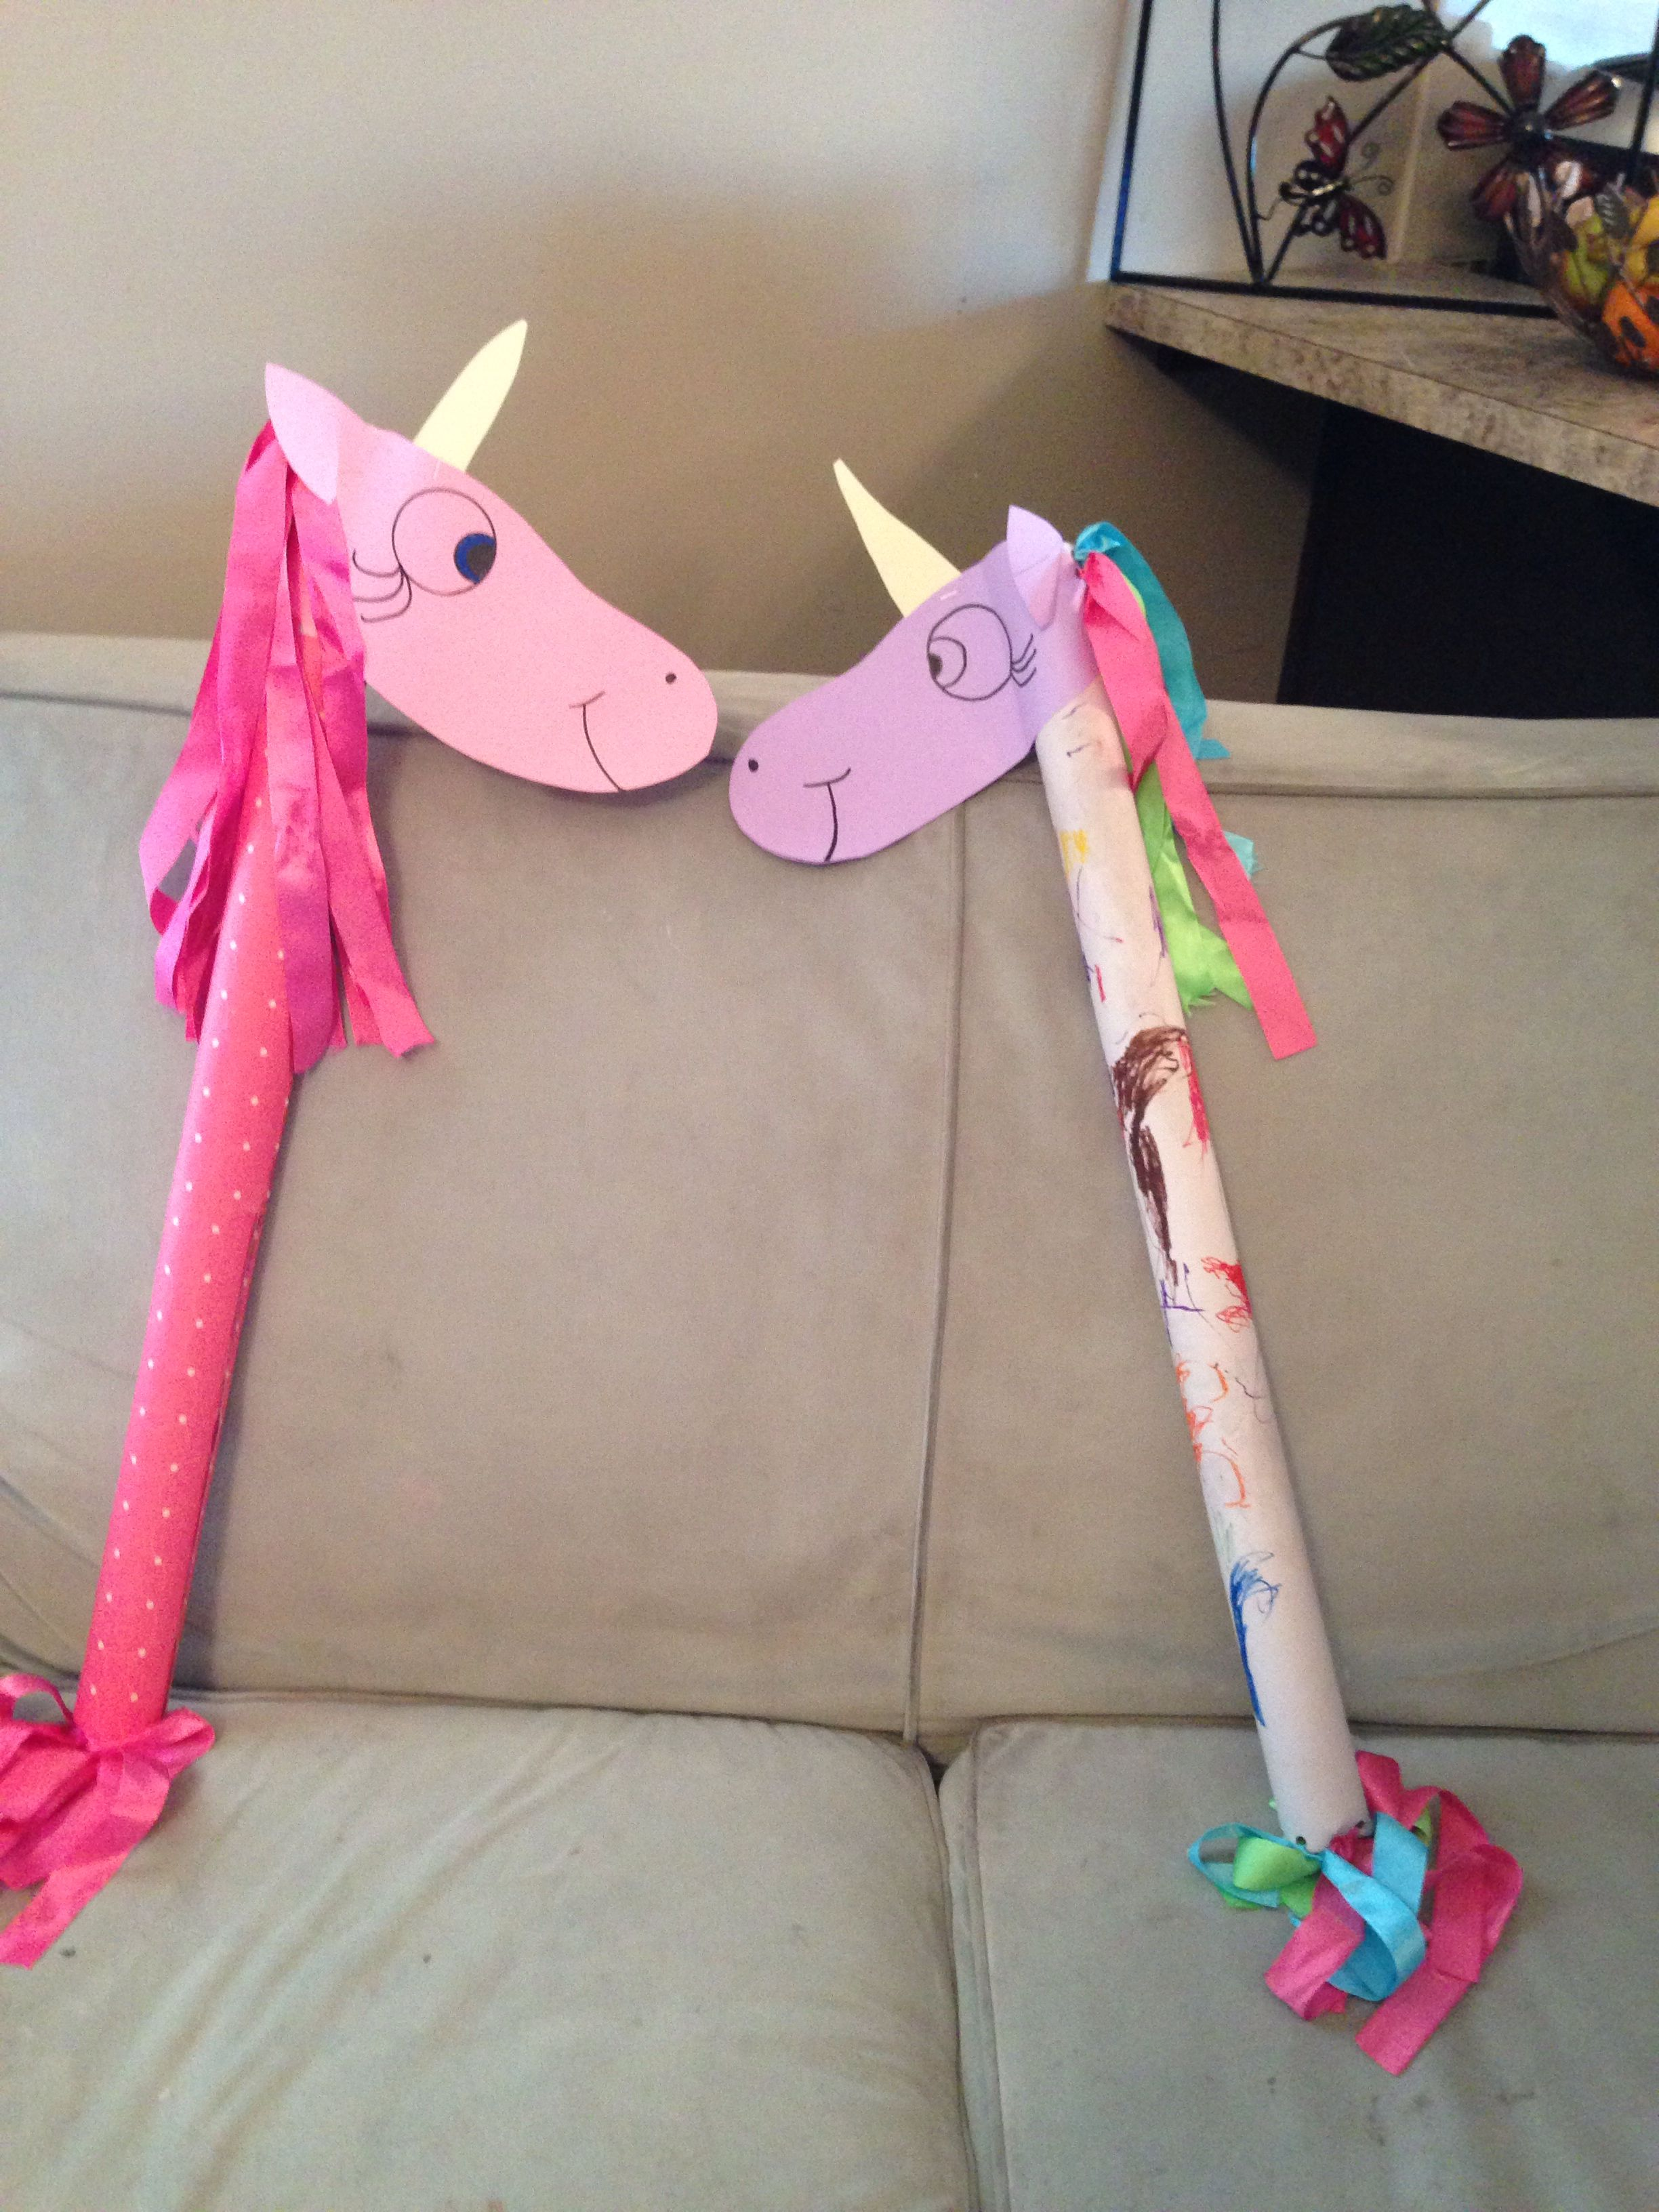 Easy To Make Stick Unicorn Or Horse Made Using A Wrapping Paper Tube Card Stock And Ribbons